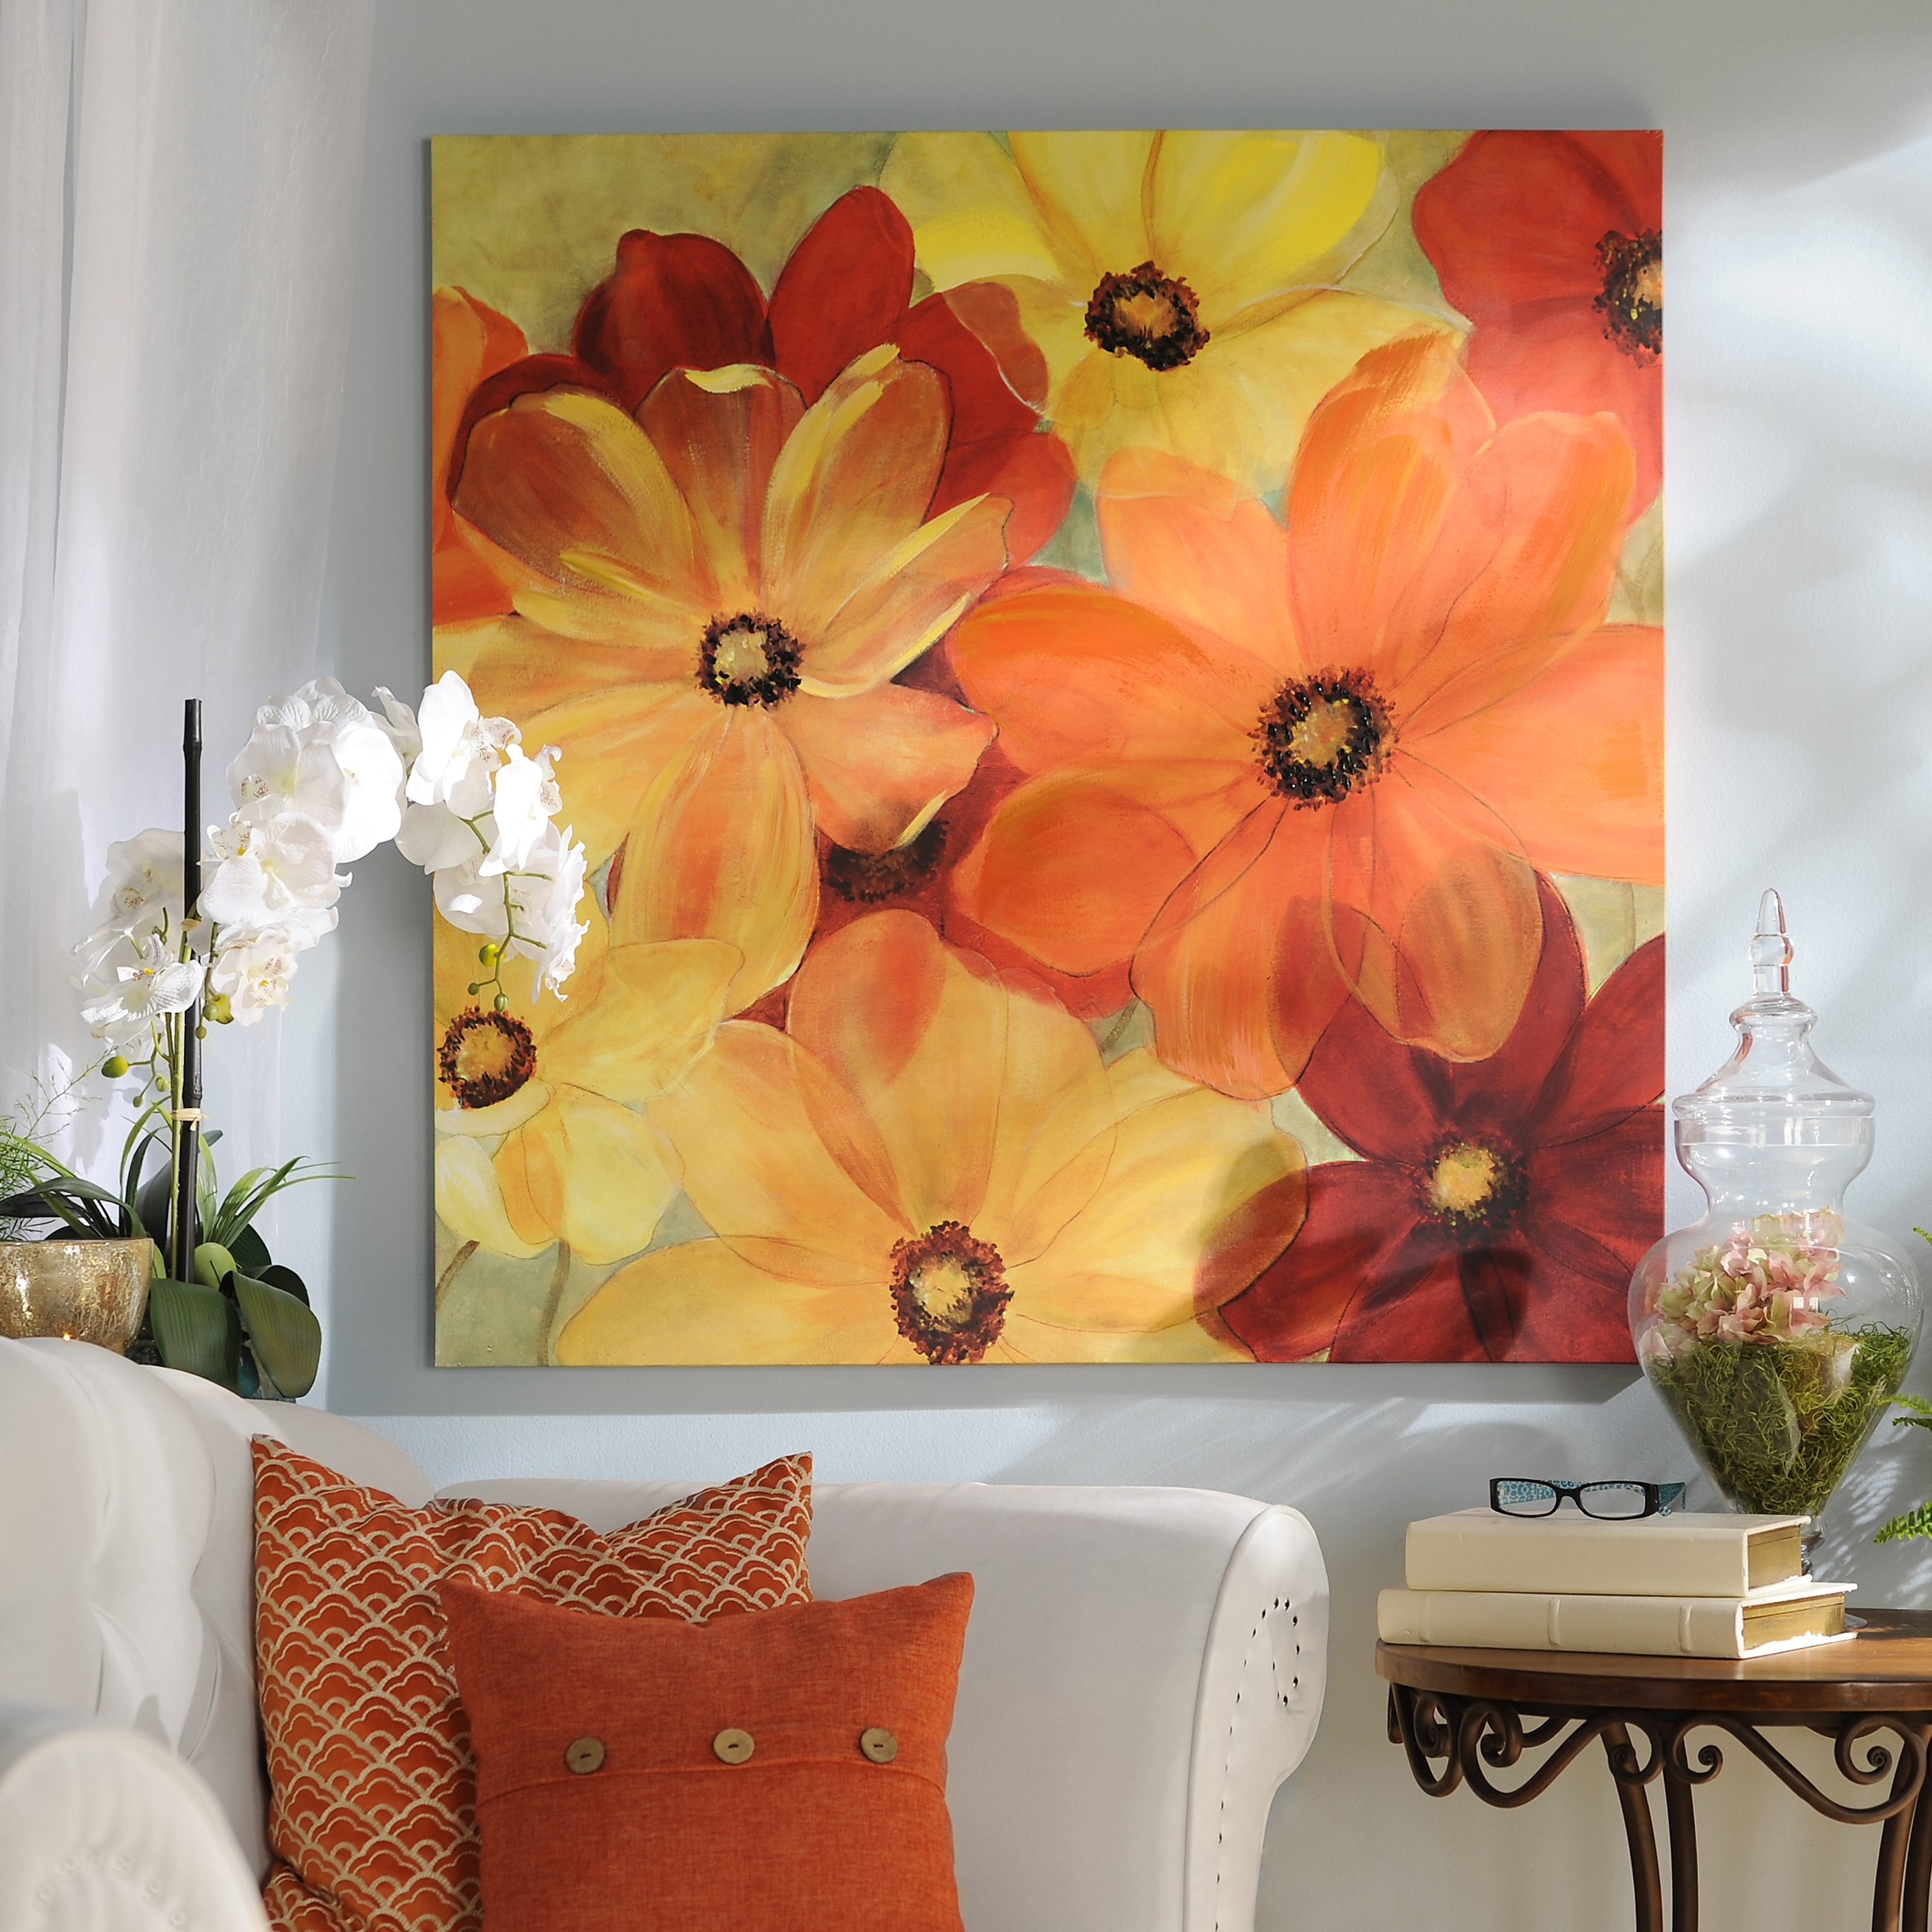 Bring Joy Into Your Home With The Sunshine Splash Canvas Art Print For Most Current Joy Canvas Wall Art (View 4 of 15)